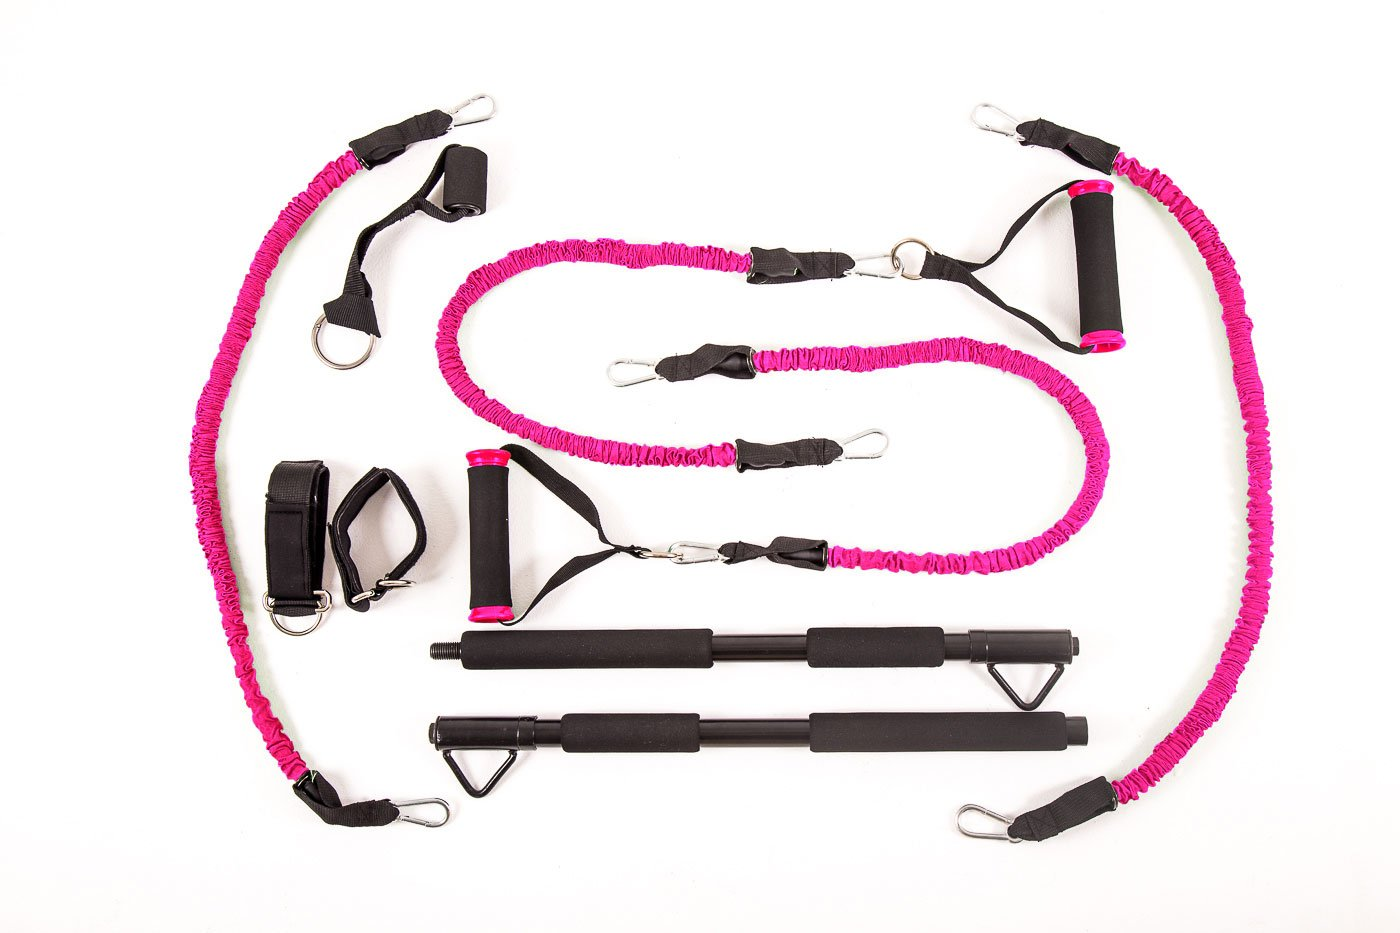 BodyBoss Home Gym 2.0 - Full Portable Gym - Full Body Workouts for Home, Travel or Anywhere You Take It. by BodyBoss (Image #4)